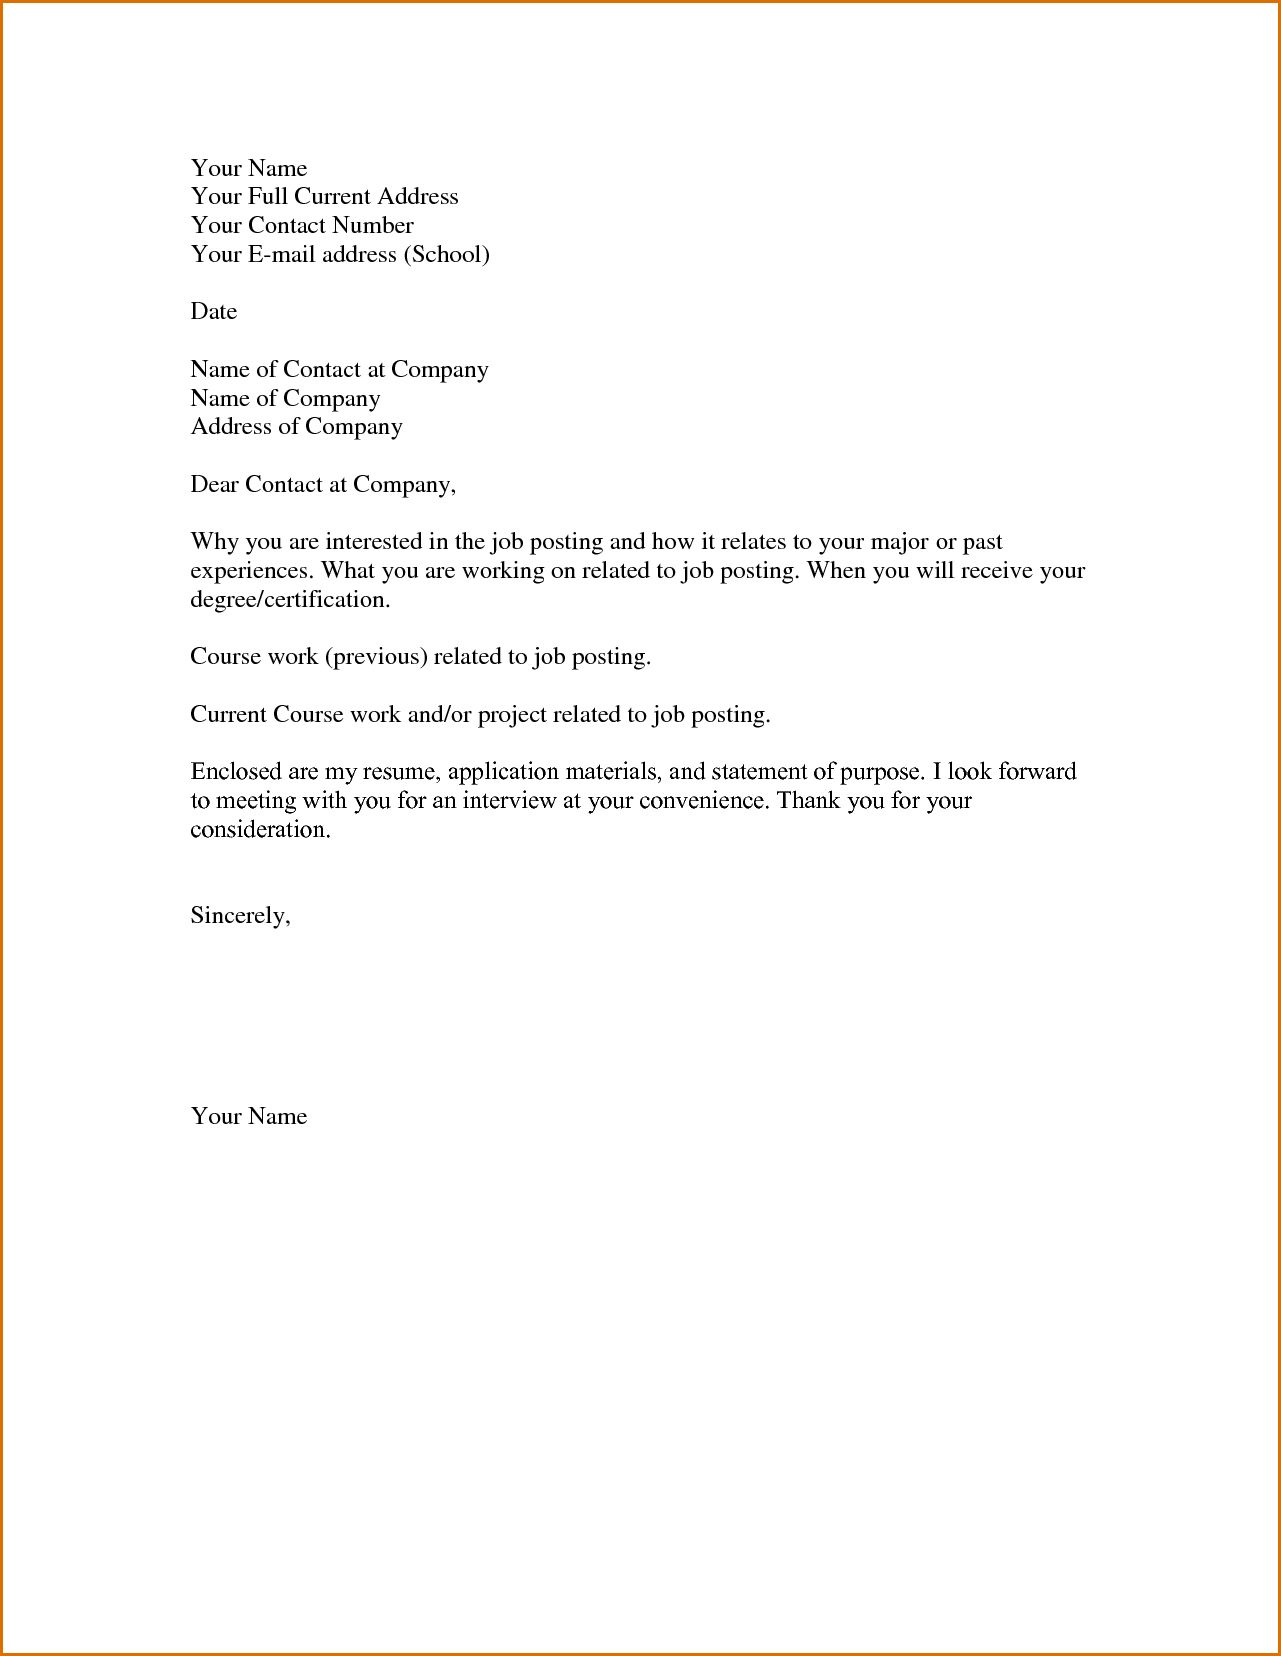 25 Simple Cover Letter For Job Application Basic Employment Ukranpoomarco